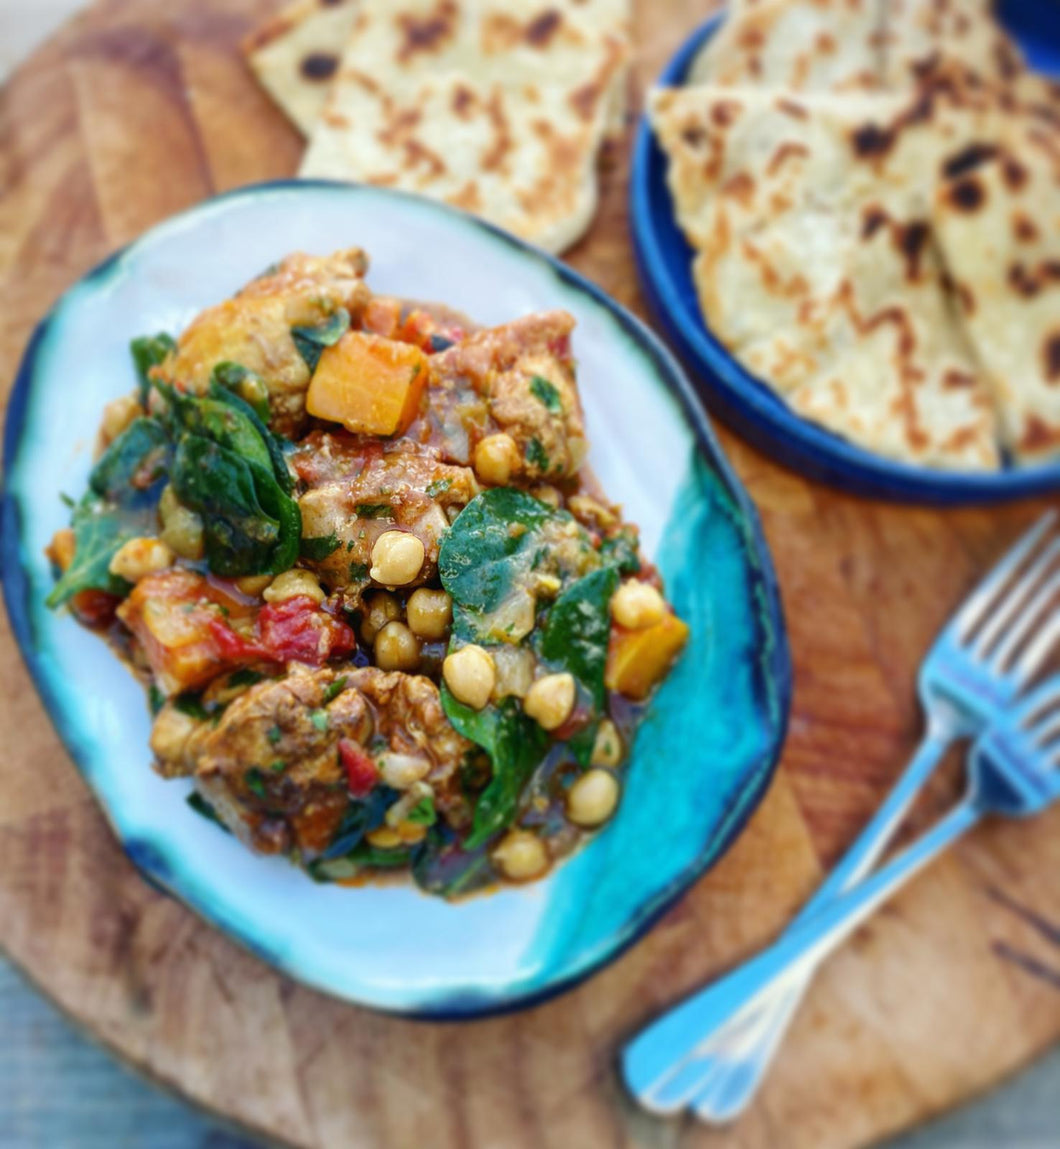 FROM THE FREEZER - Meal for 2. Rich & bold Moroccan chicken, squash & chick pea tagine